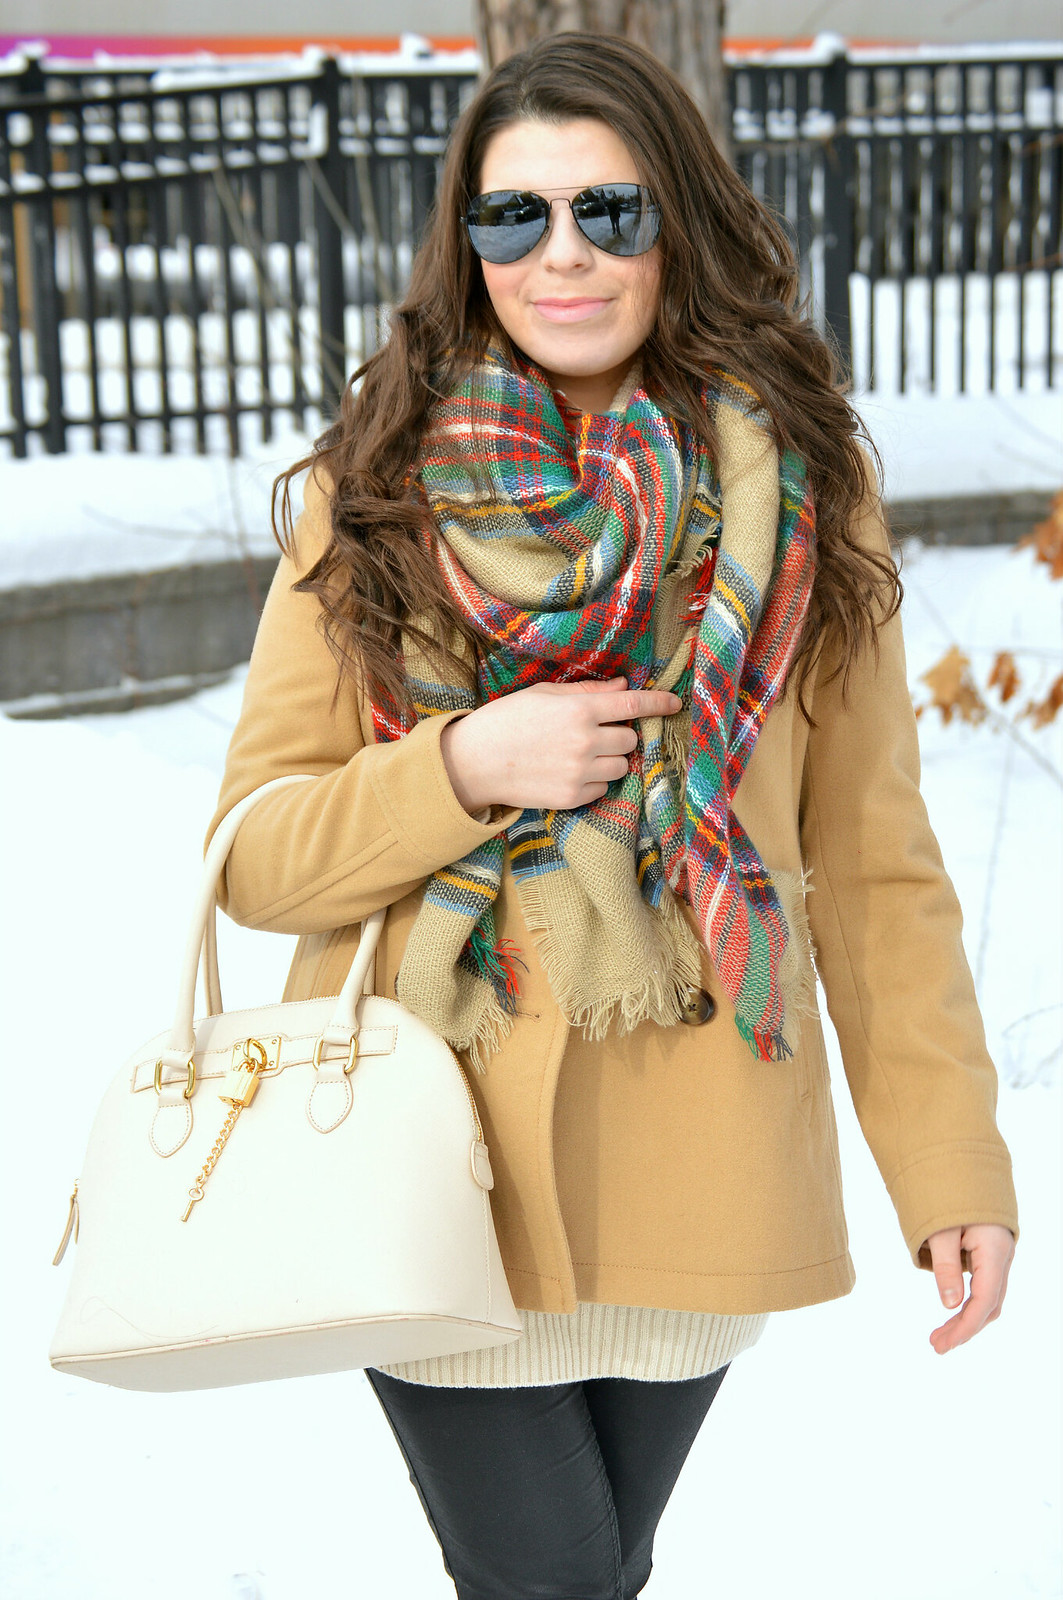 pea coat and blanket scarf 2